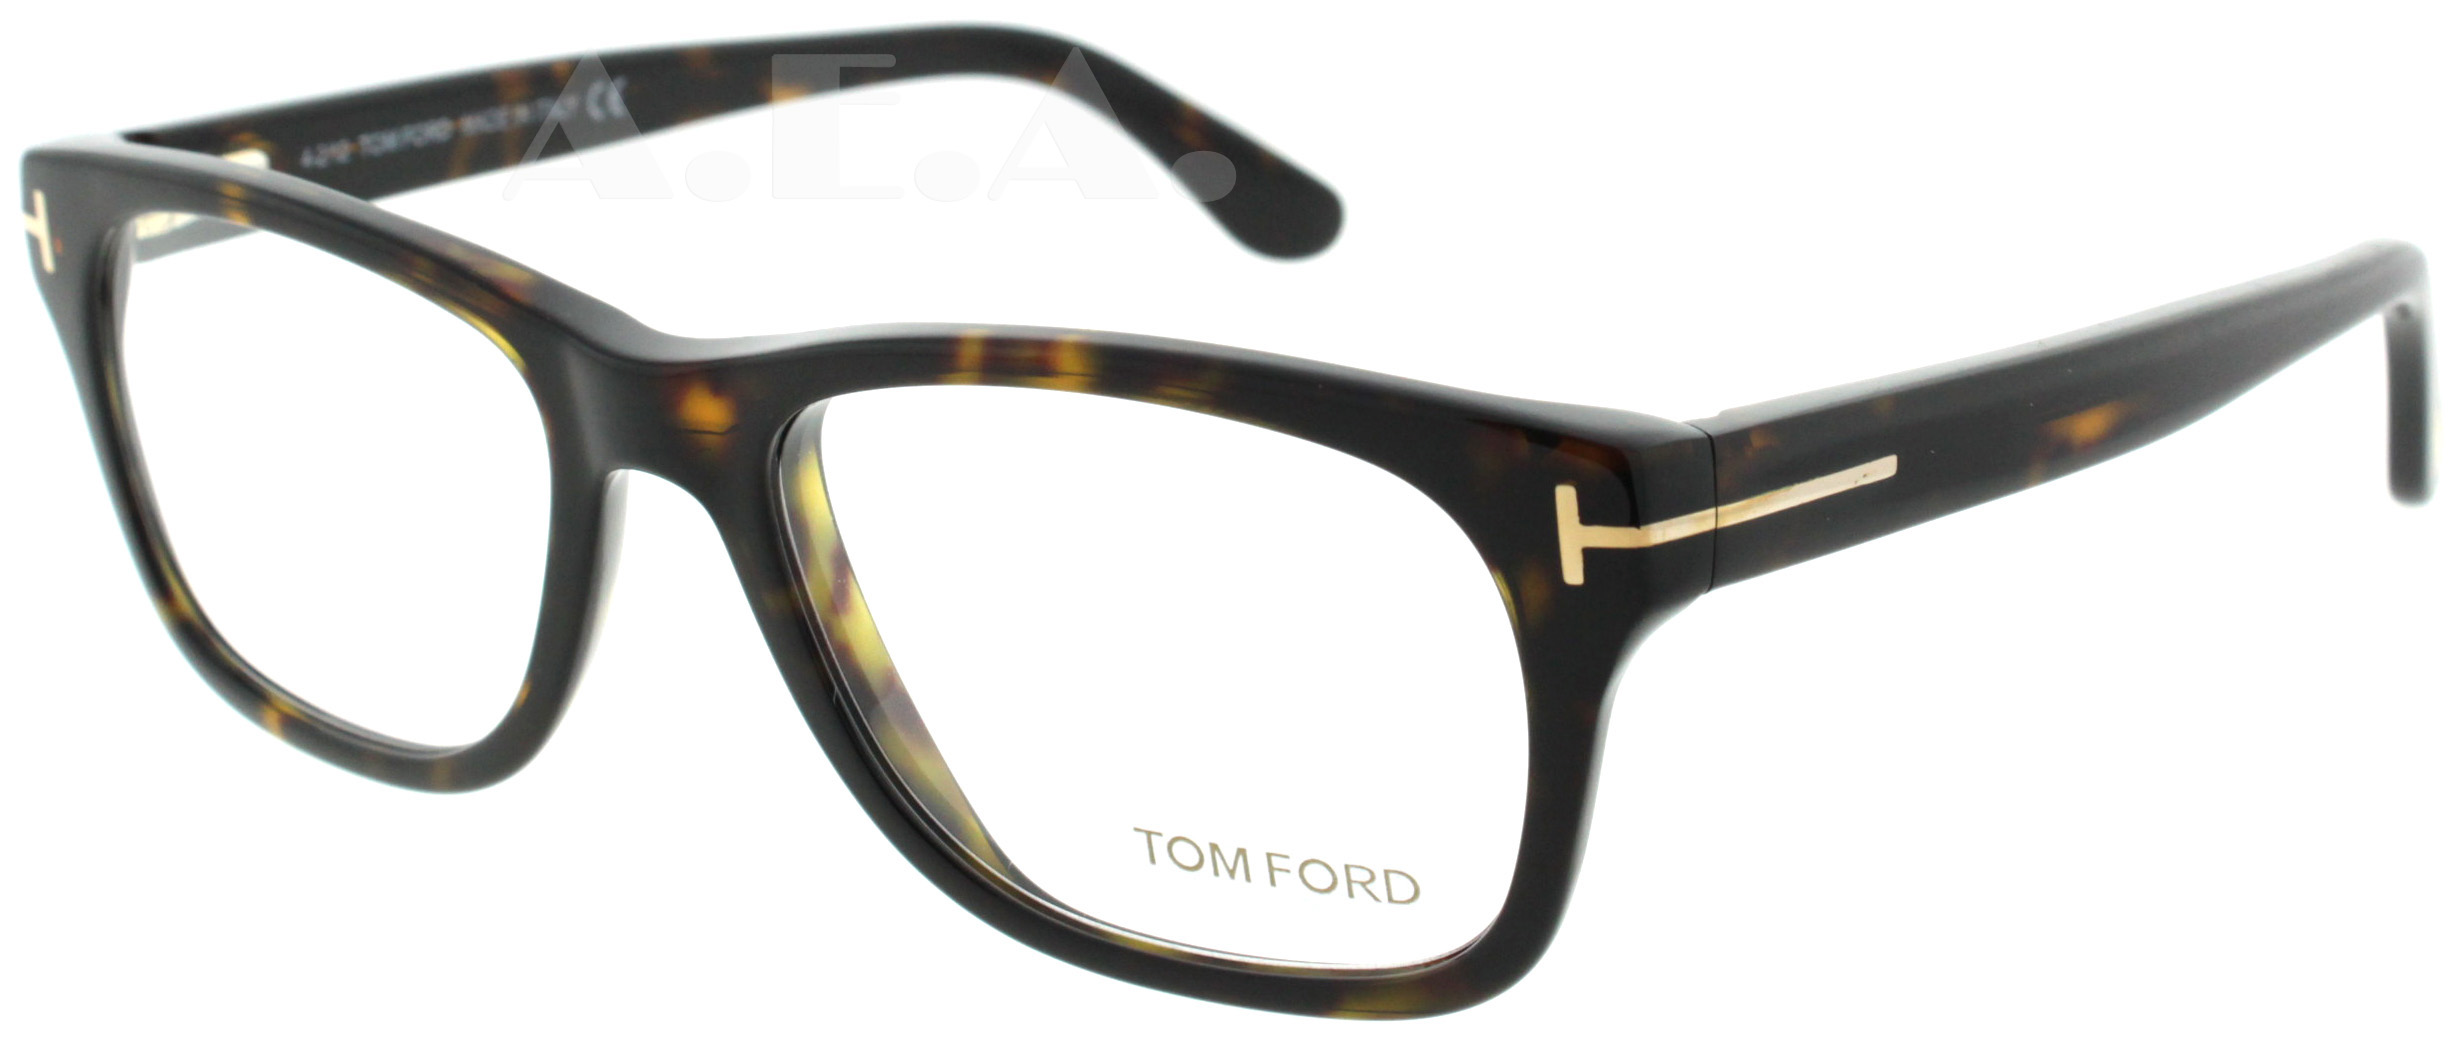 tom ford tf 5147 052 brown tortoise 52mm